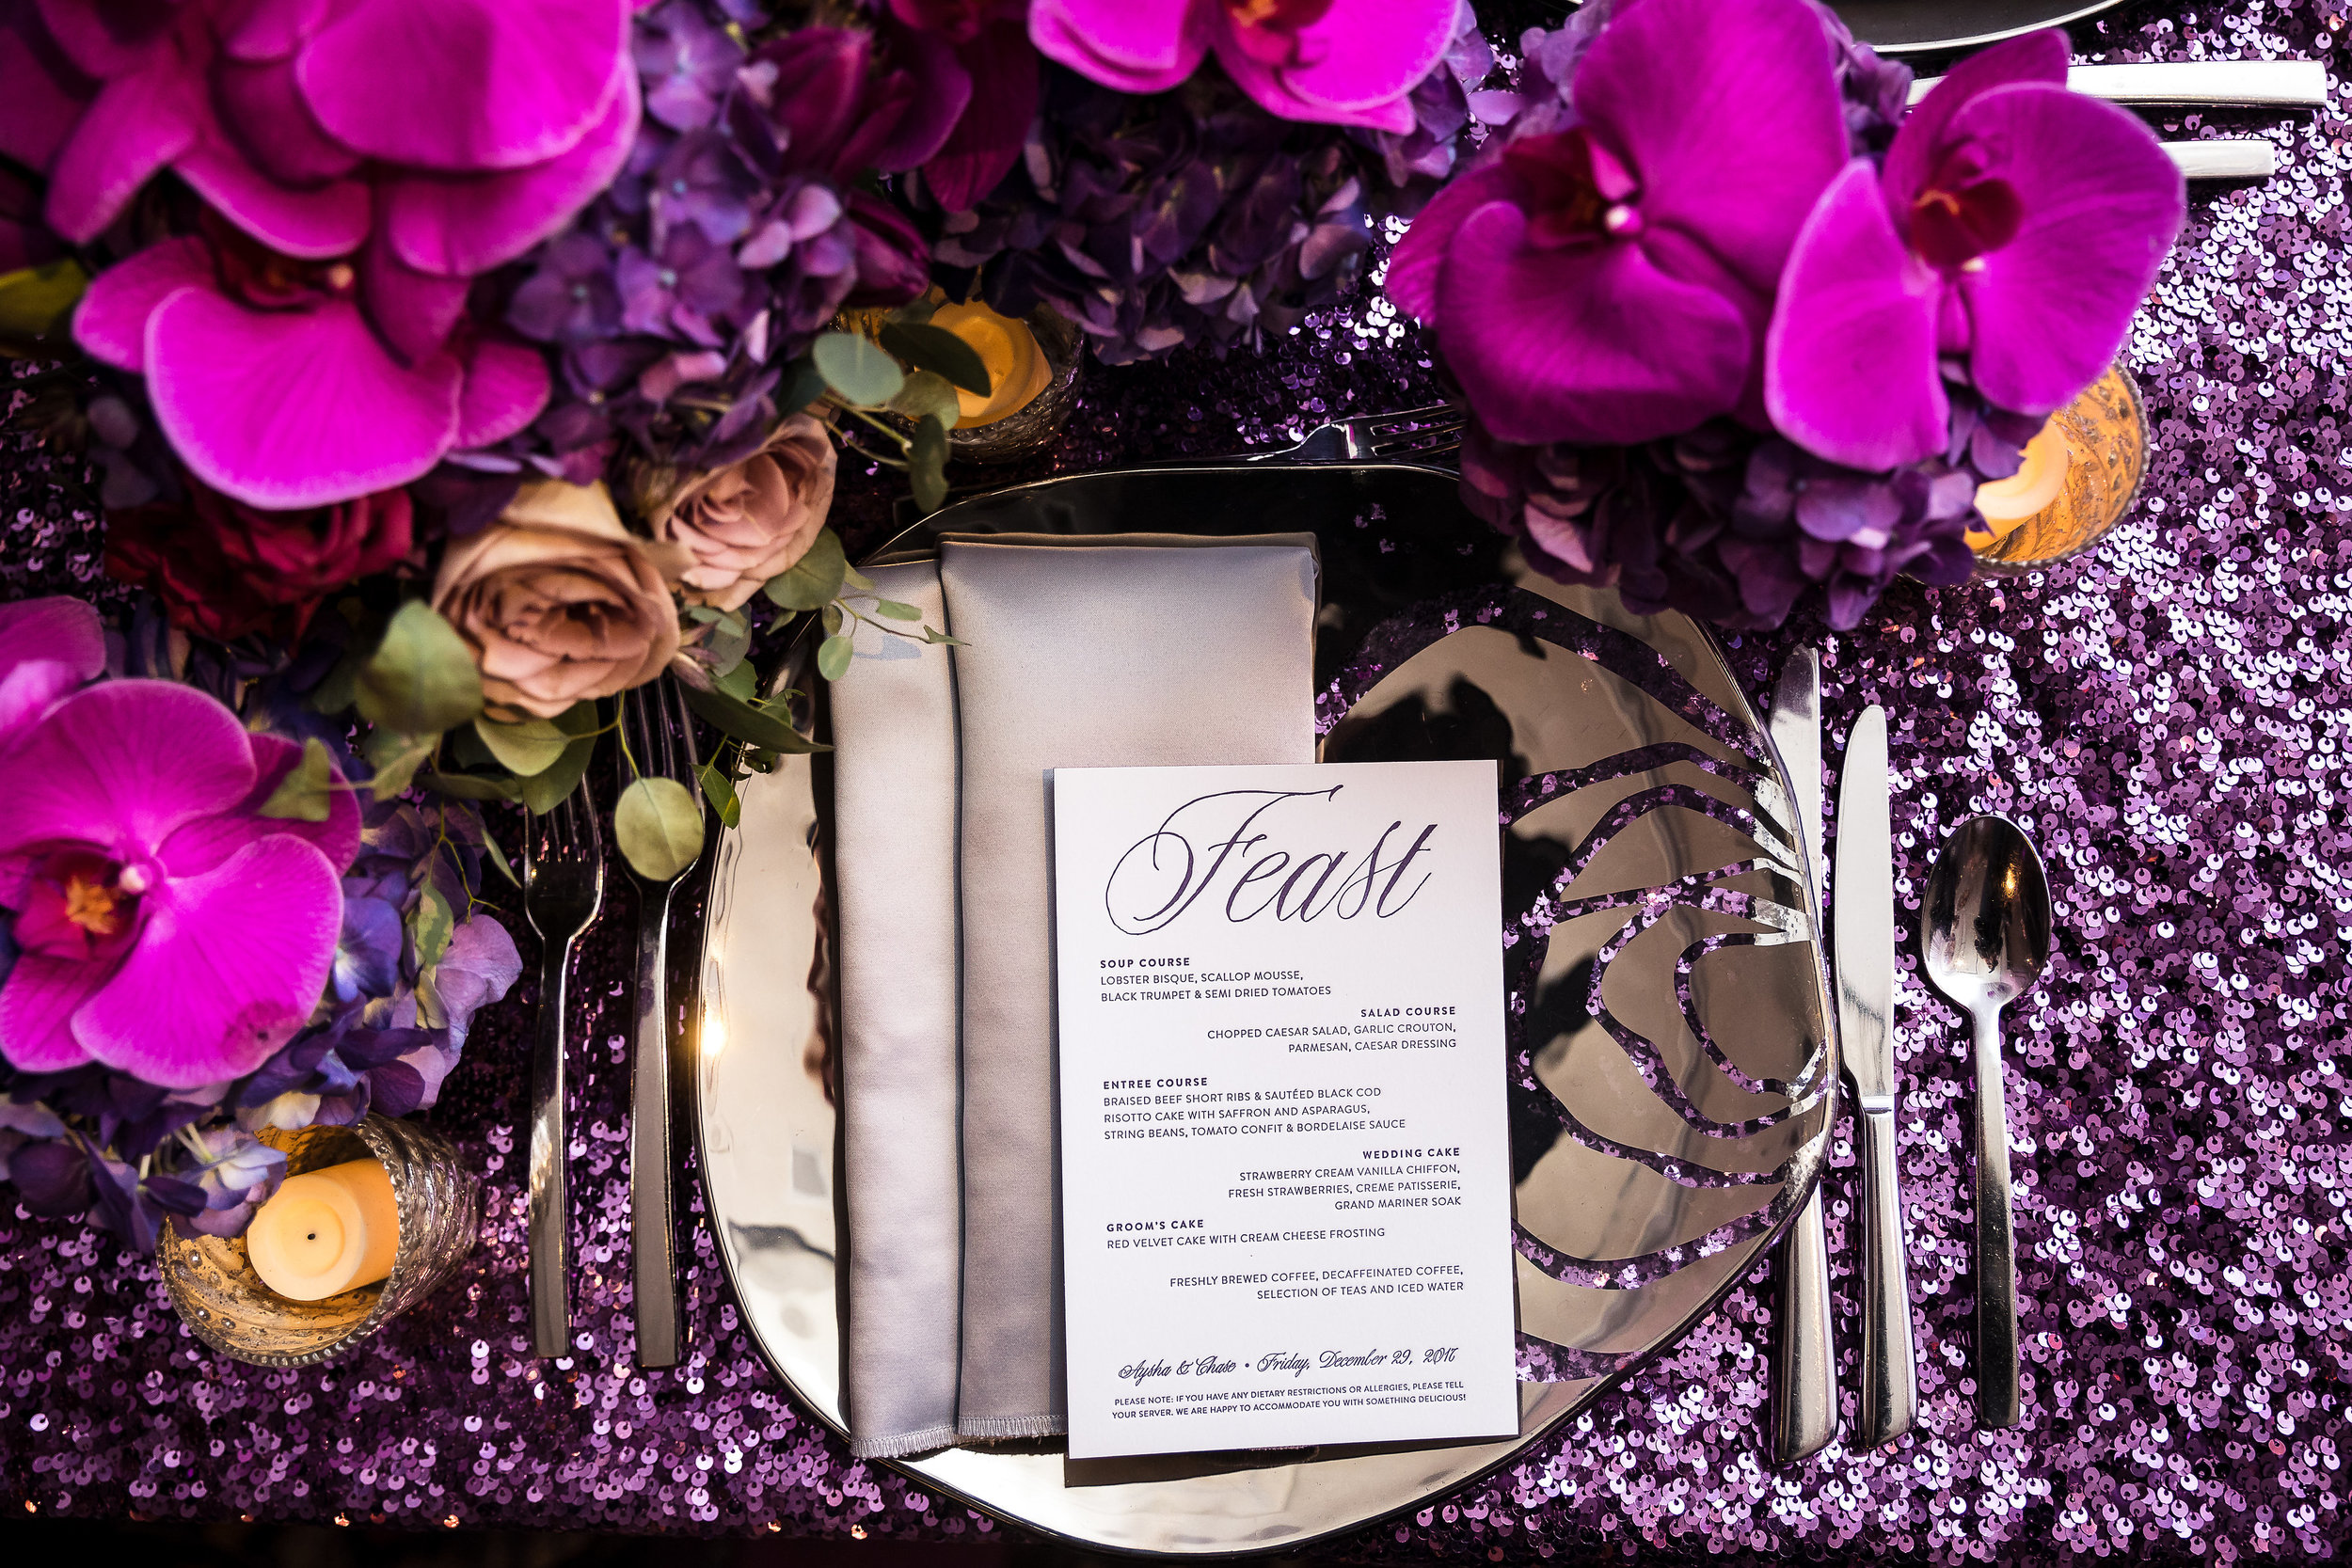 FEAST! Letterpress menu with grey and purple print.Wedding Planner: Andrea Eppolito Events    Photography  Brian Leahy    Videography  HOO Films    Venue & Catering: Mandarin Oriental / Waldorf Astoria   Floral & Decor: Destinations by Design    Lighting: LED Unplugged    Music: DJ Breeze II    Hair & Make Up: Amelia C & Co    Invitations by  Bliss & Bone    Menu and Escort Cards by  Meldeen